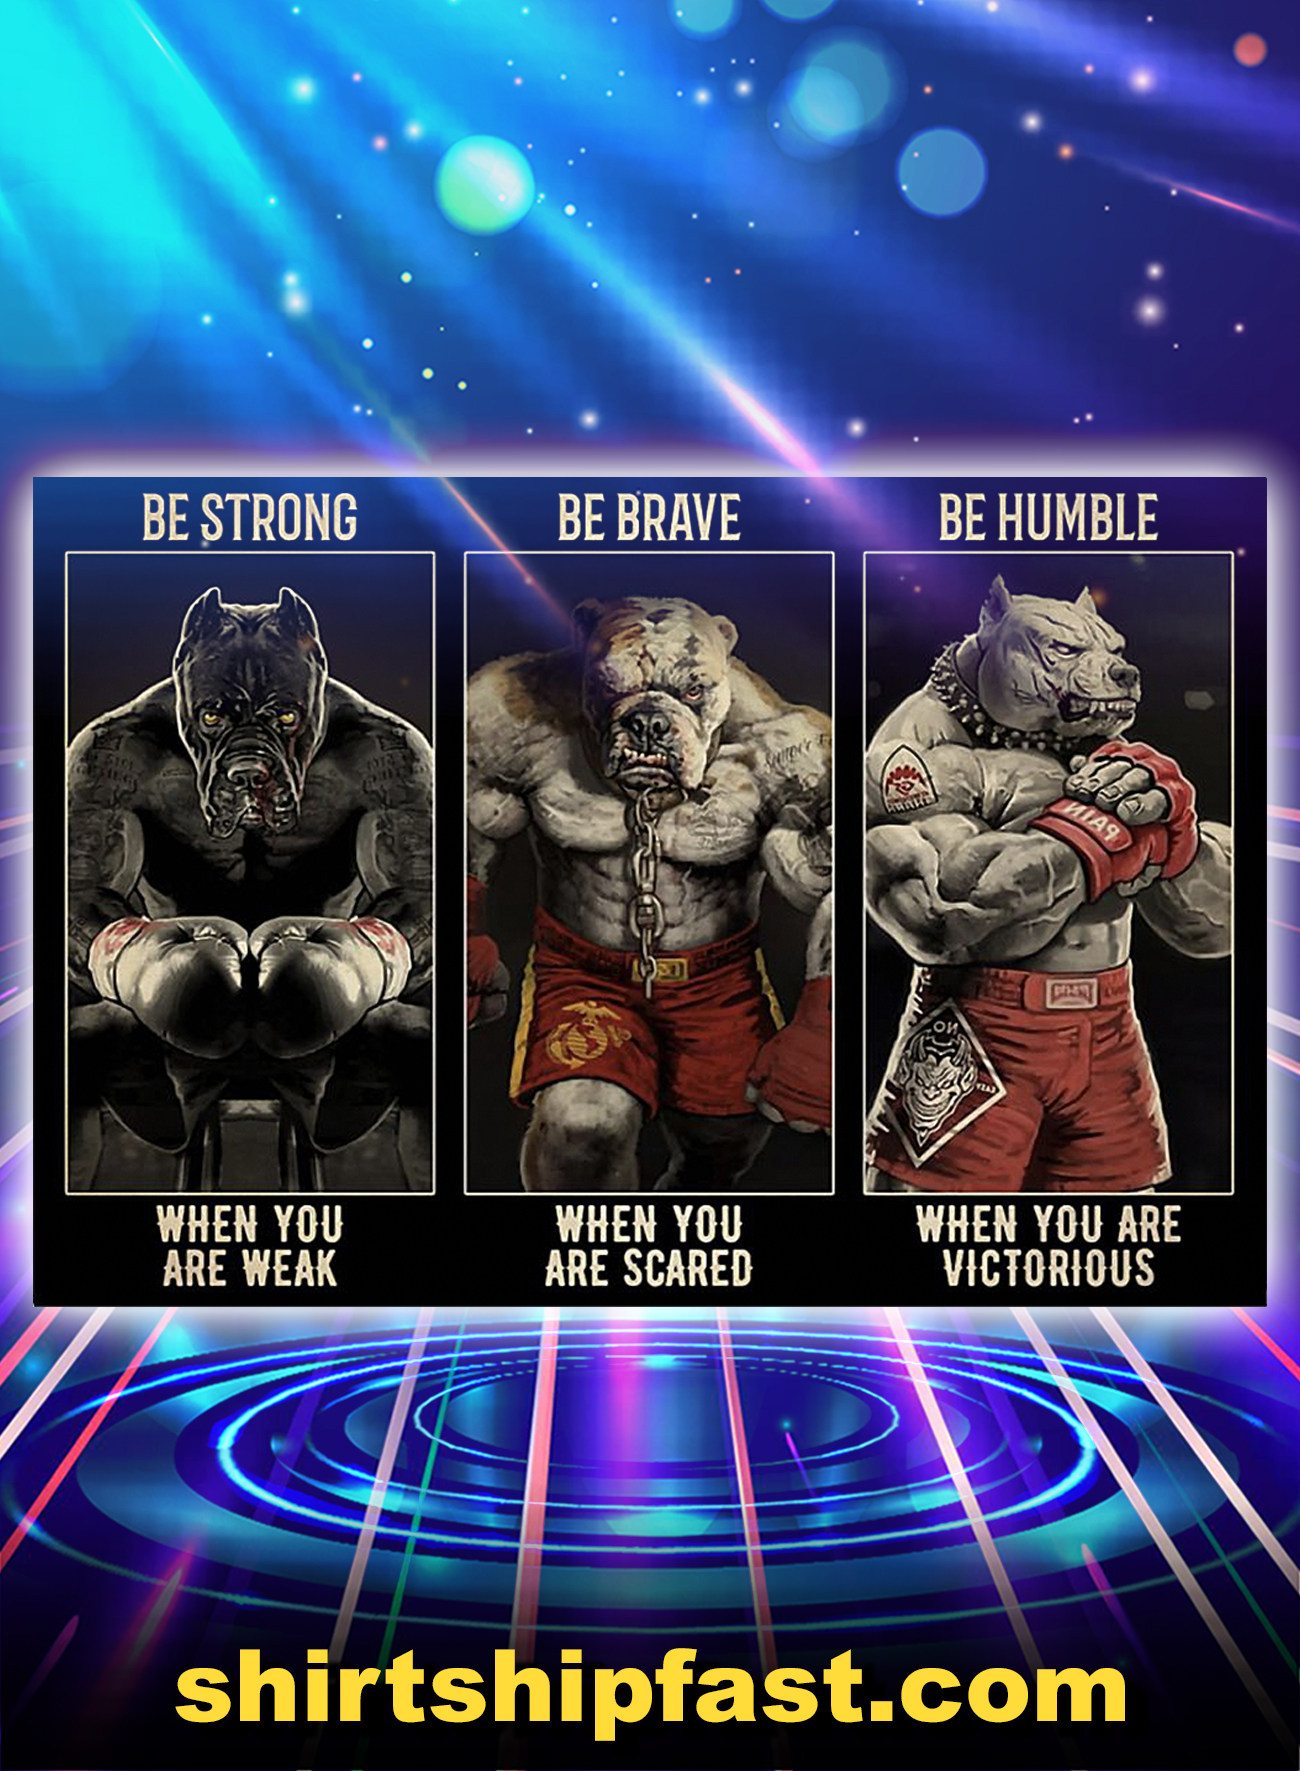 Poster Pitbull boxing be strong be brave be humble - A4